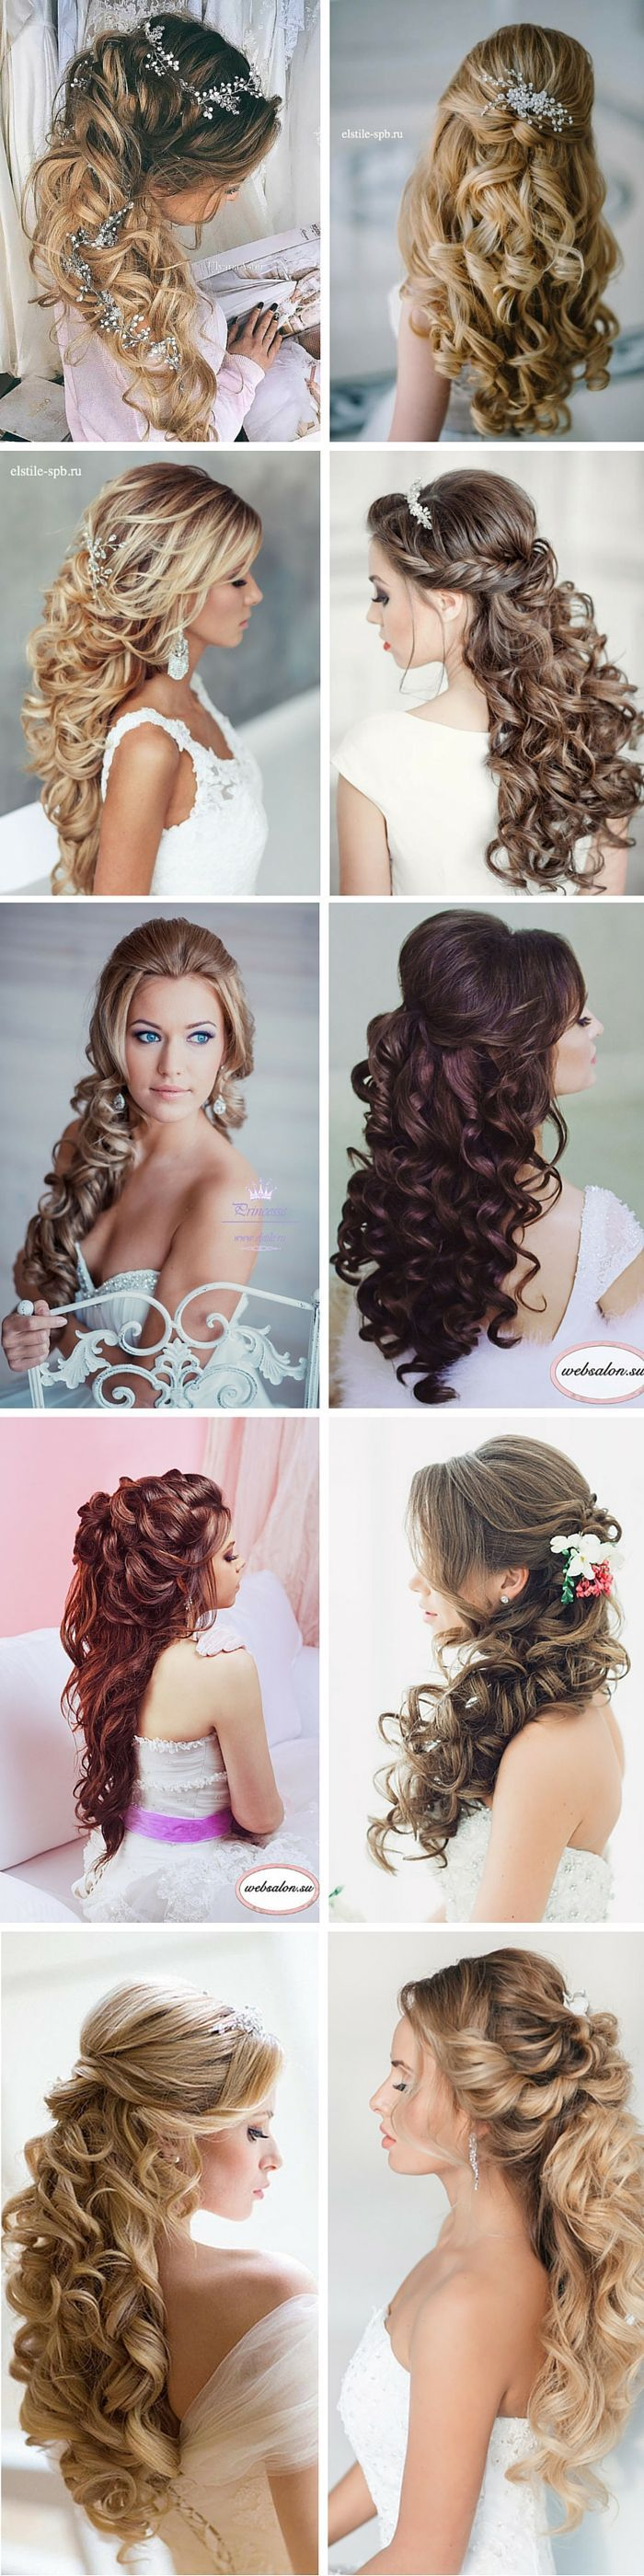 611 best Prom Hairstyles images on Pinterest